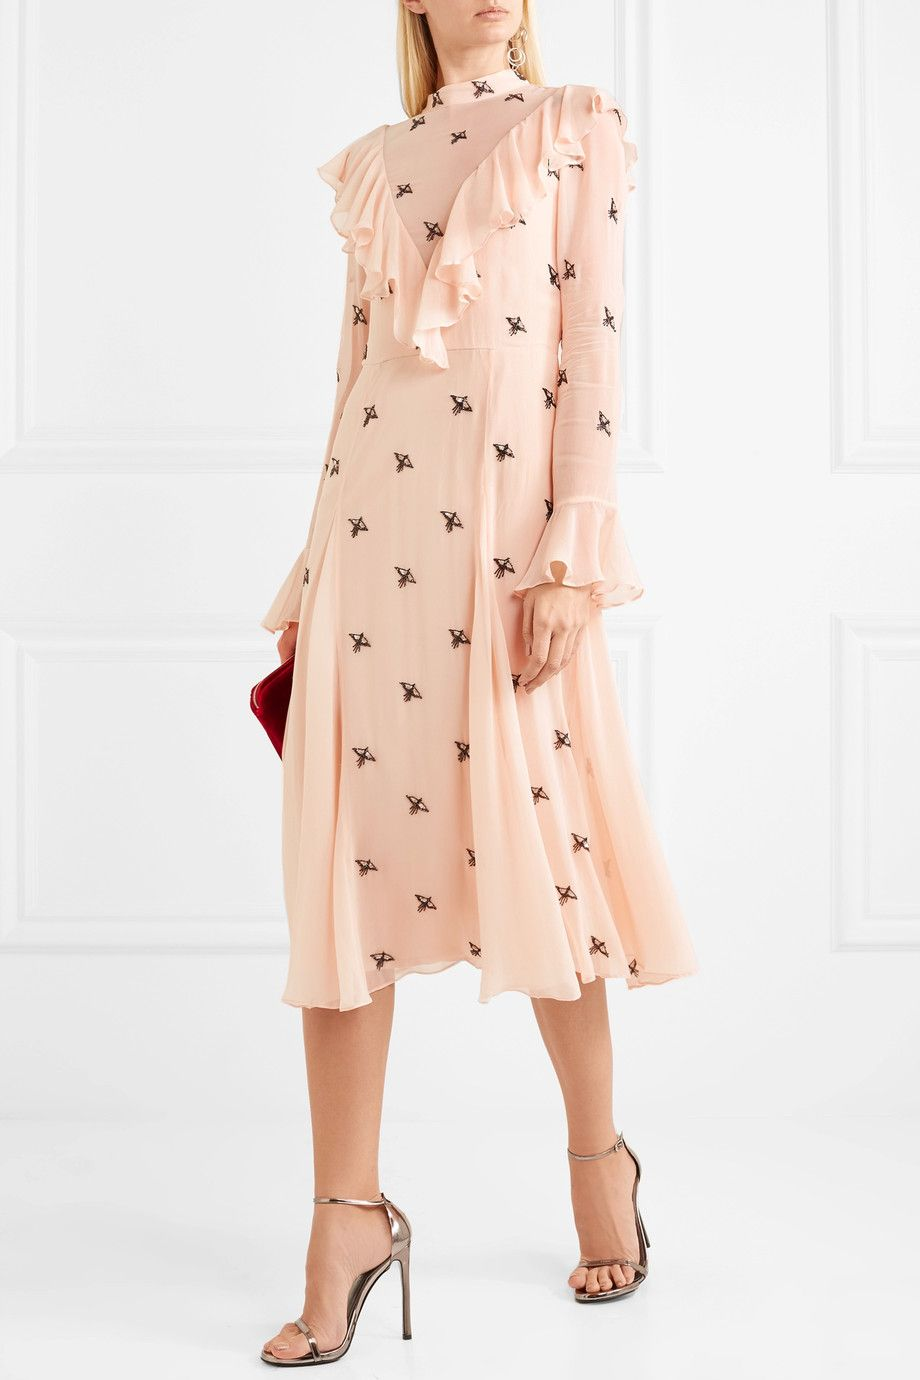 Starling Ruffled Embellished Georgette Dress - Pastel pink Temperley London 26u80